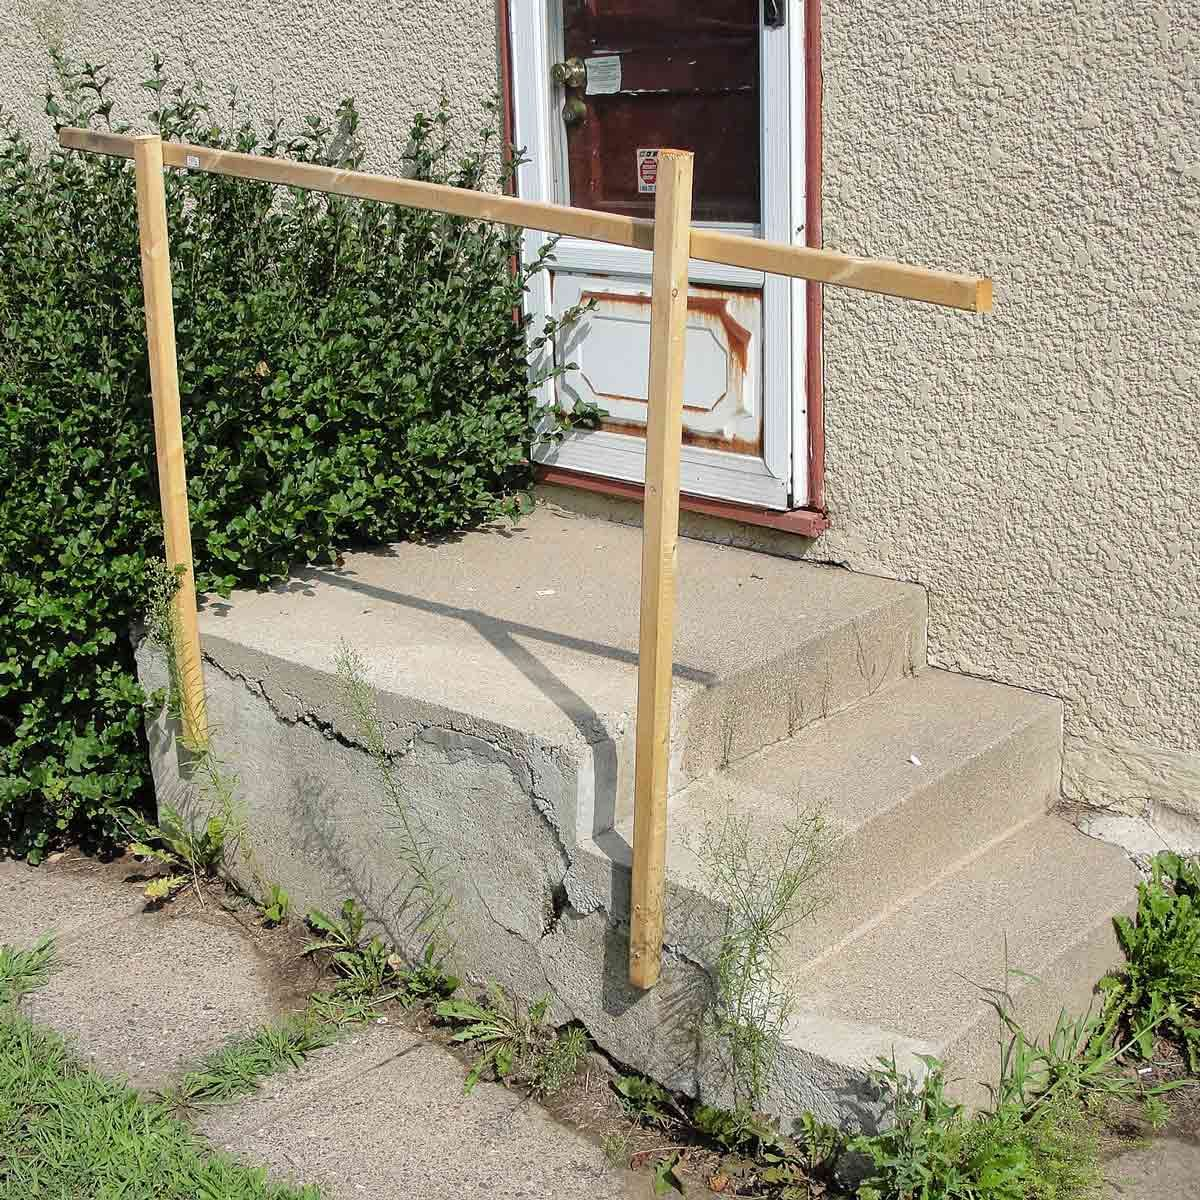 quick and easy handrail dangerous whats wrong with this picture